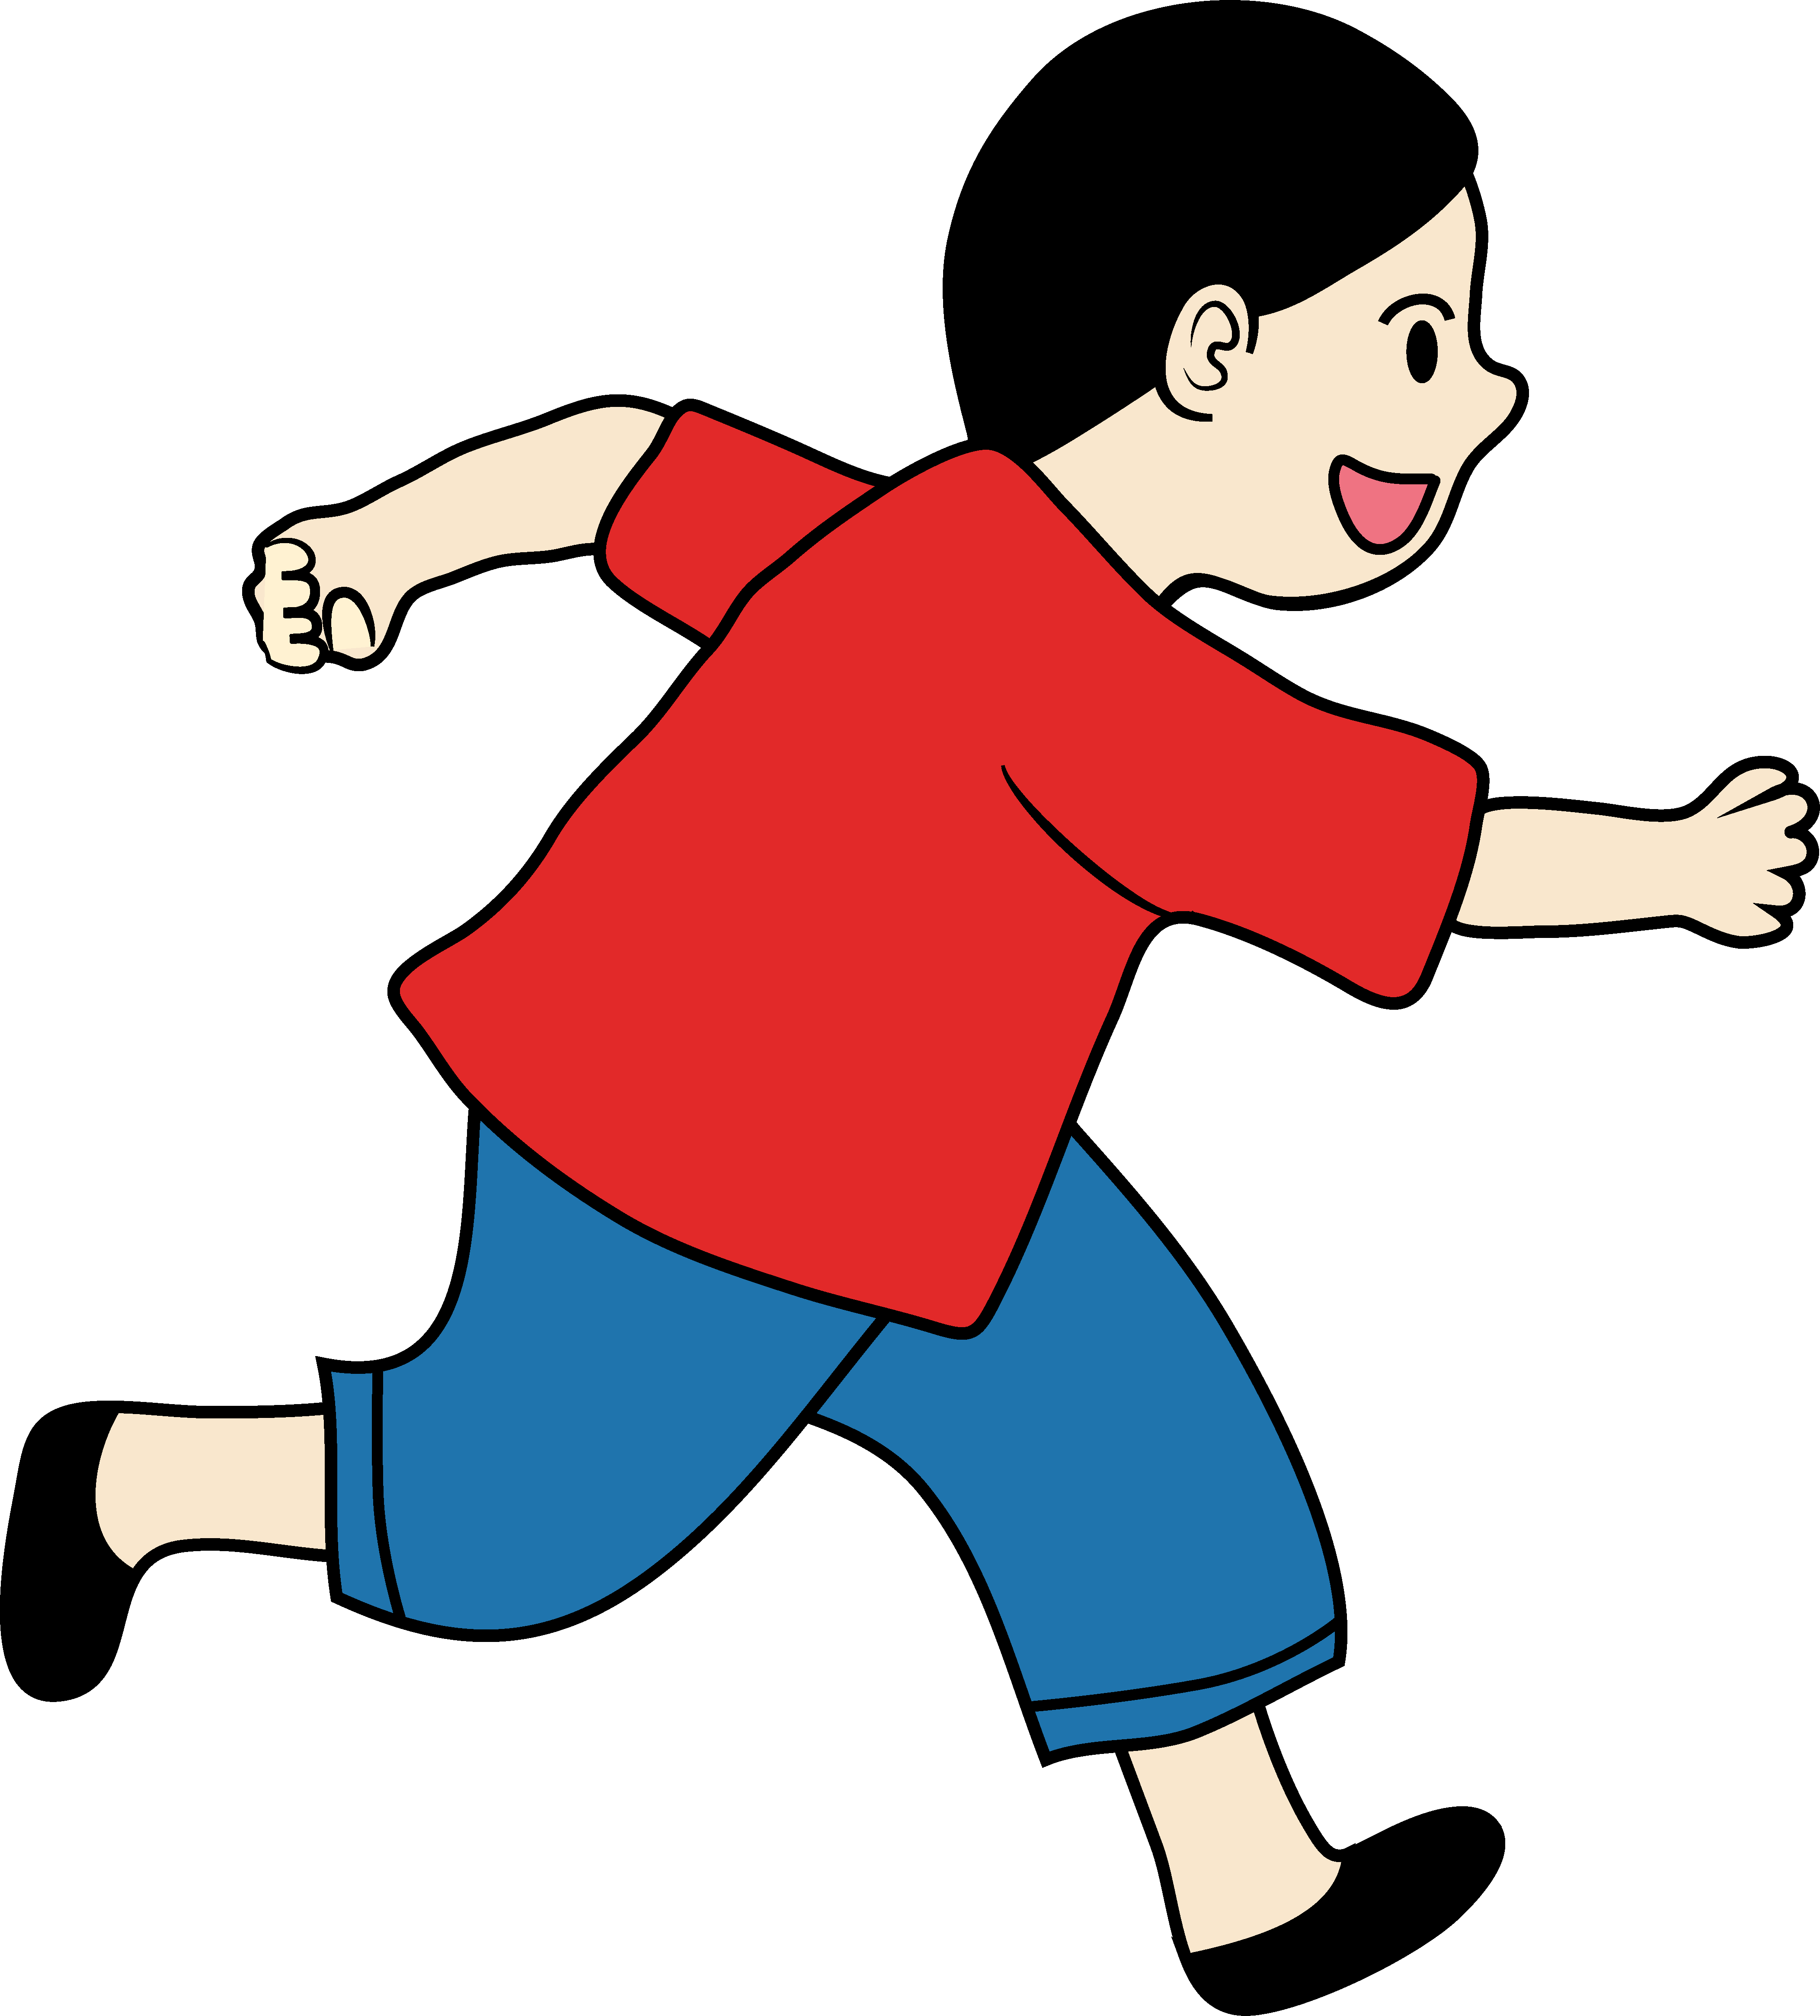 banner free download Kid running clipart. Children at getdrawings com